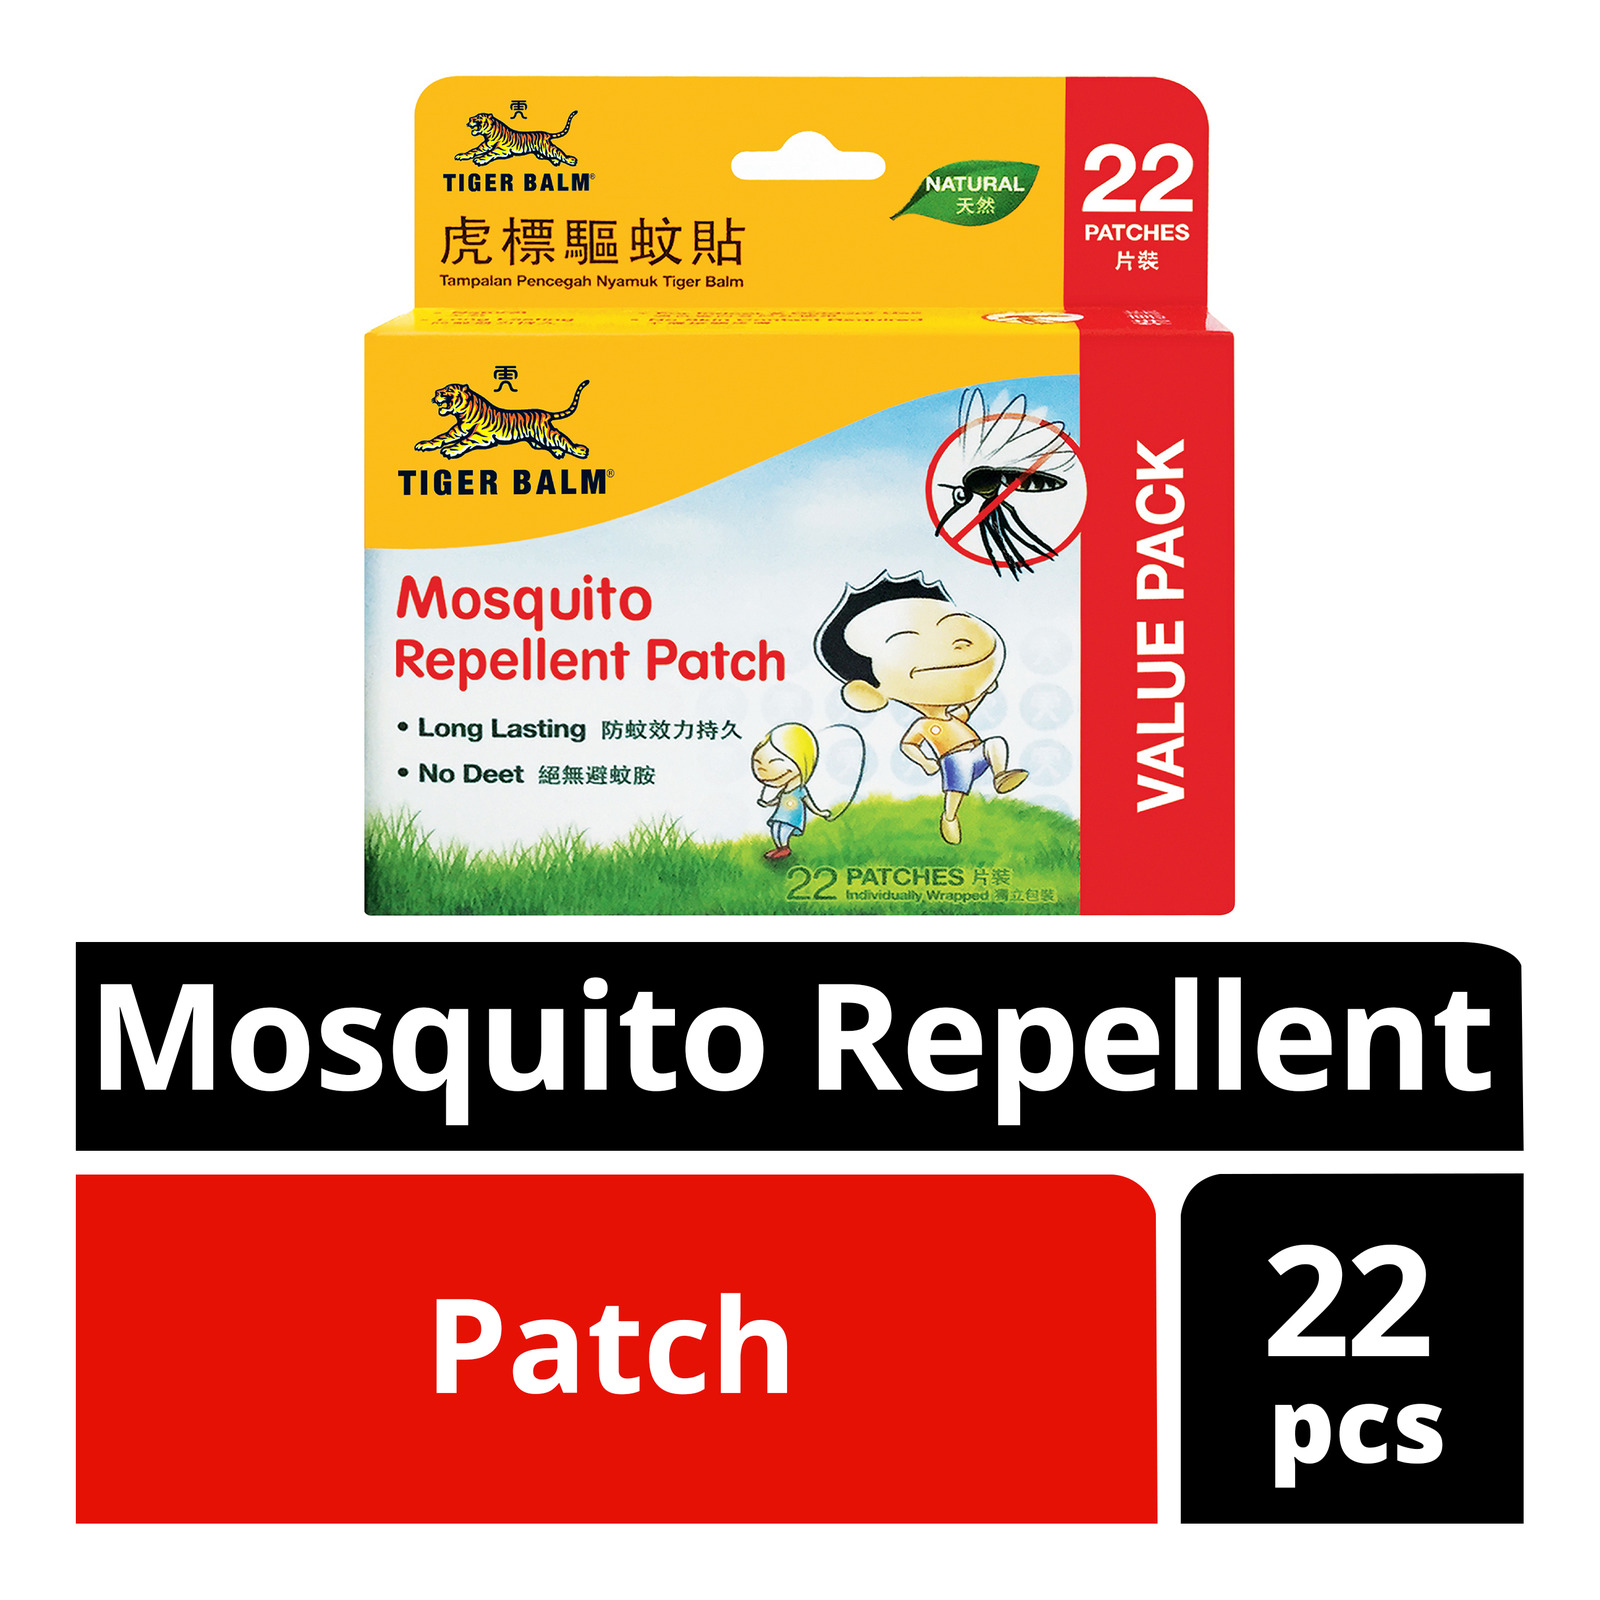 Tiger Balm Natural Mosquito Repellent - Patch